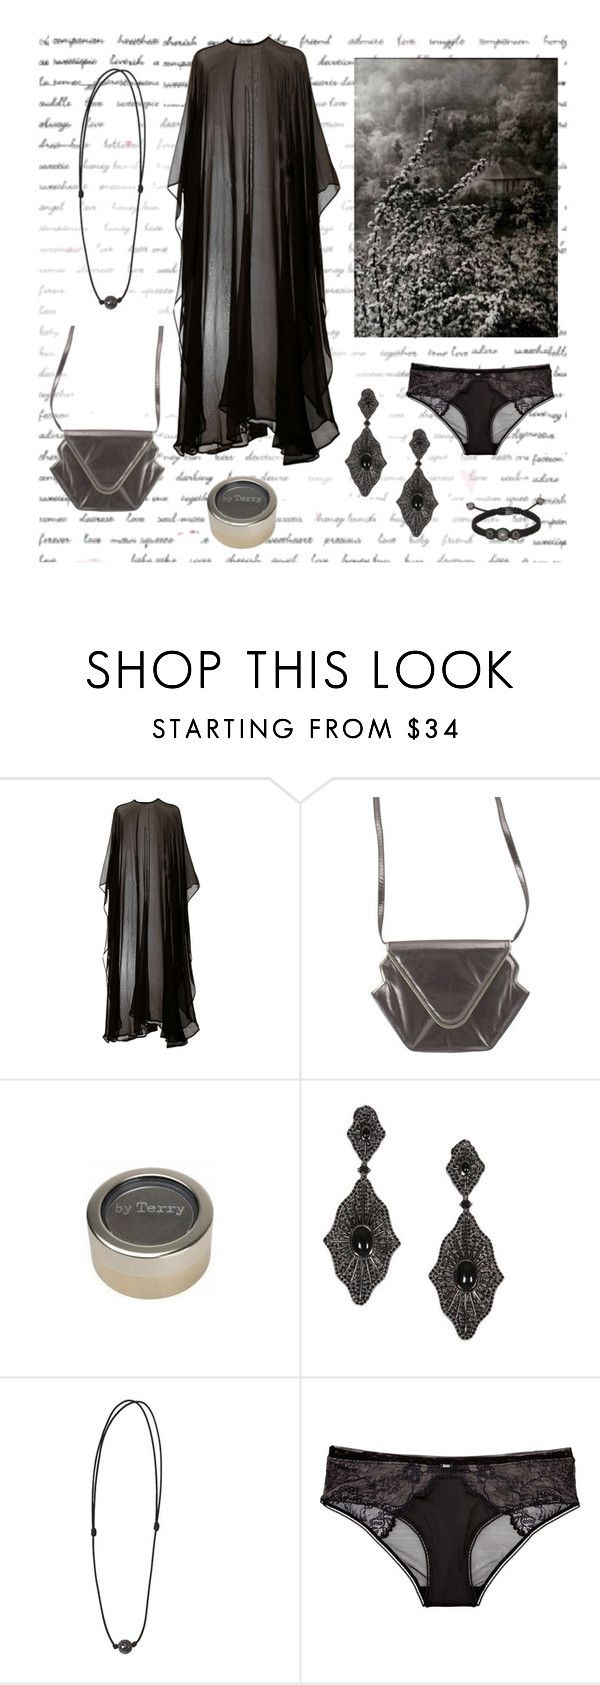 """""""The emptiness"""" by rougenoir666 ❤ liked on Polyvore featuring Dries Van Noten, By Terry, Privé Jewellery, ShamballaJewels, Calvin Klein Underwear, vintage purse, earrings, lace briefs and sheer poncho"""